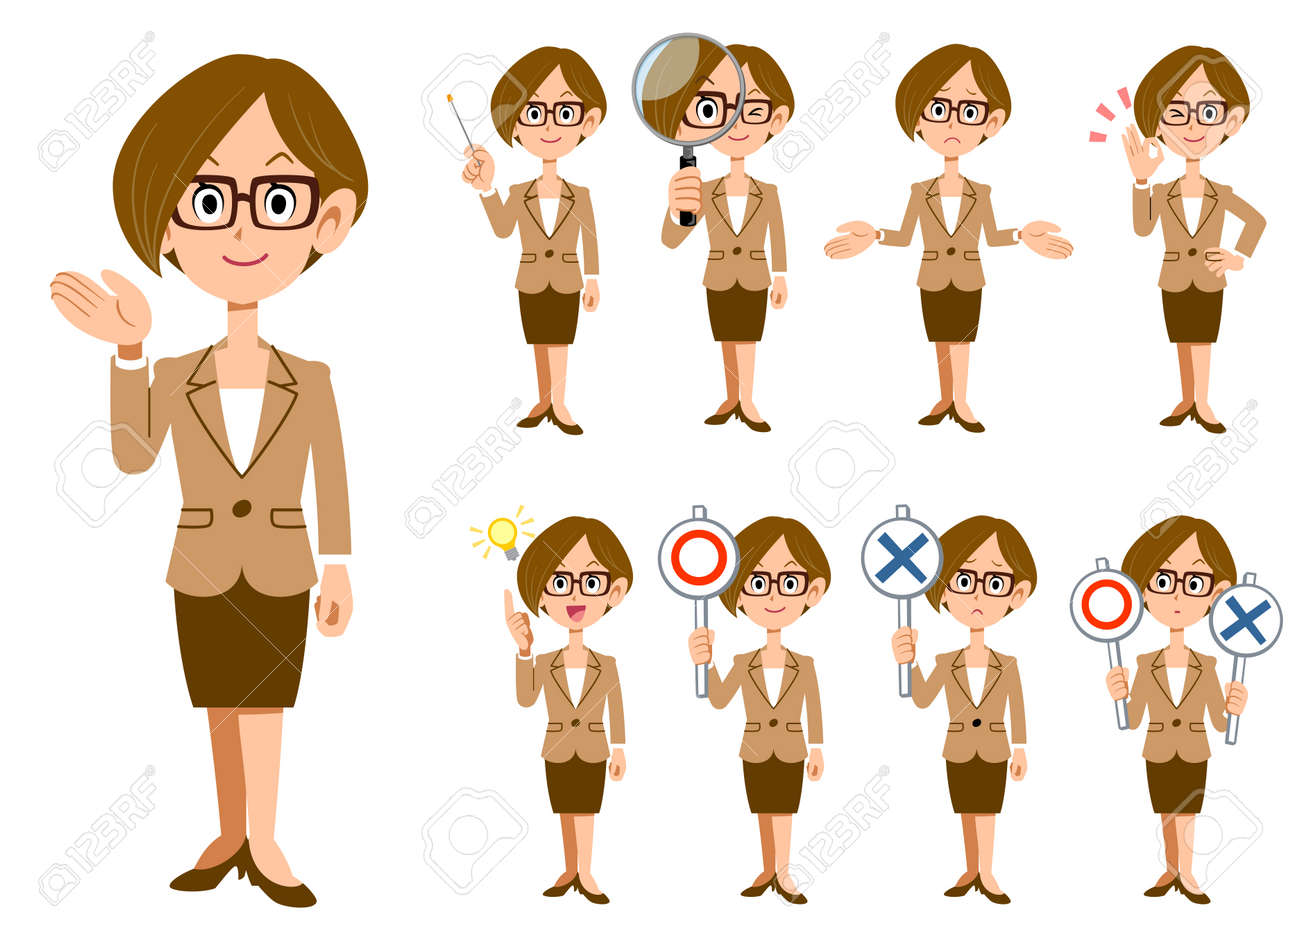 working women with eyeglasses 9 gestures and expressions whole body